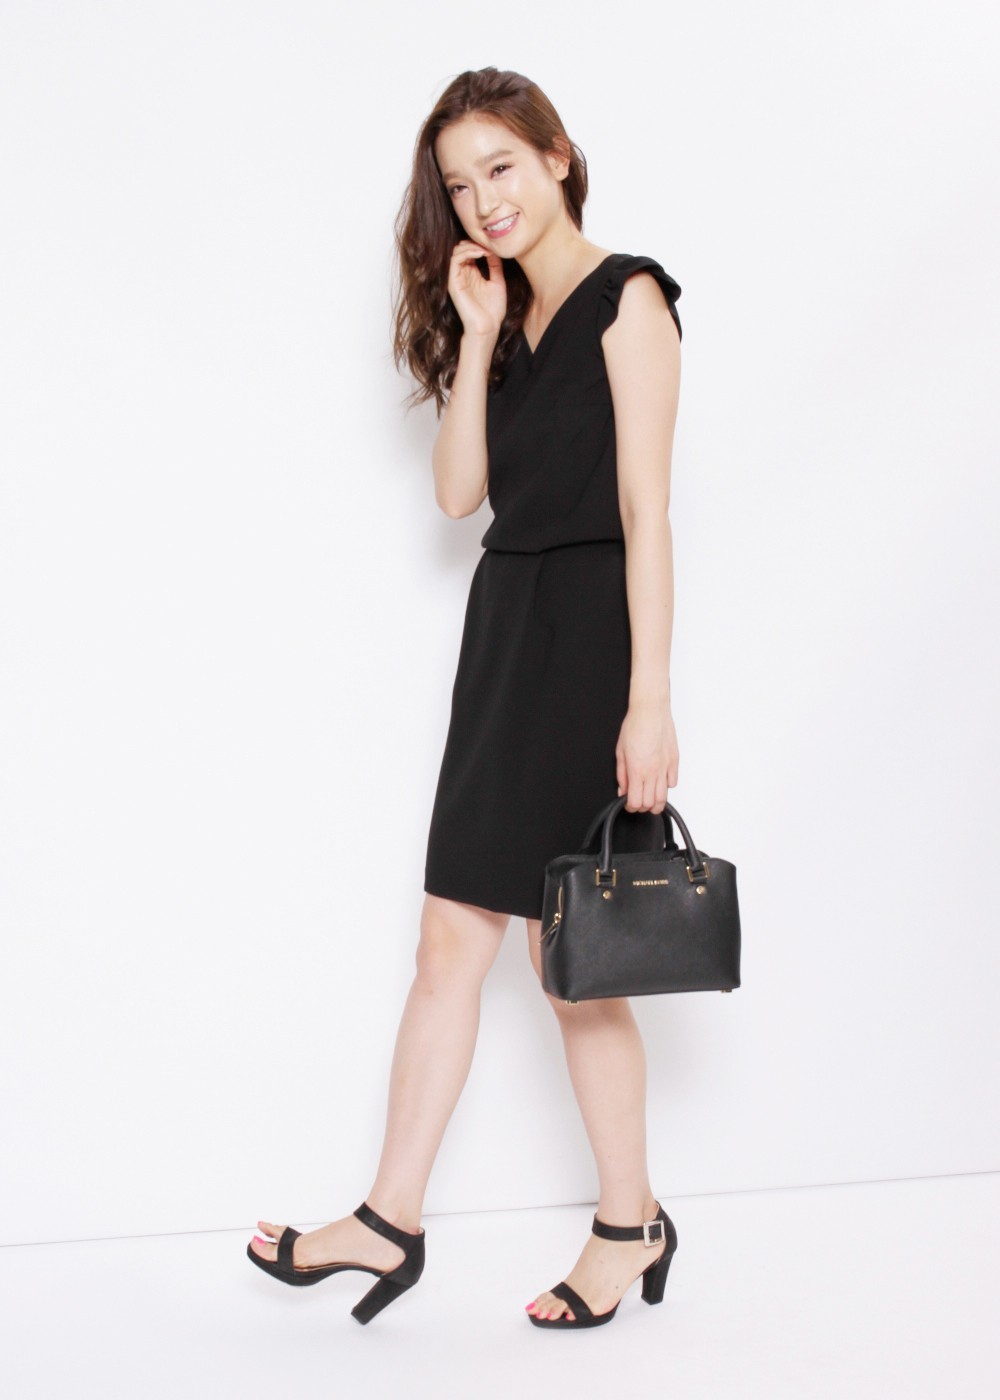 Small Satchel|Black|ハンドバッグ|MICHAEL KORS